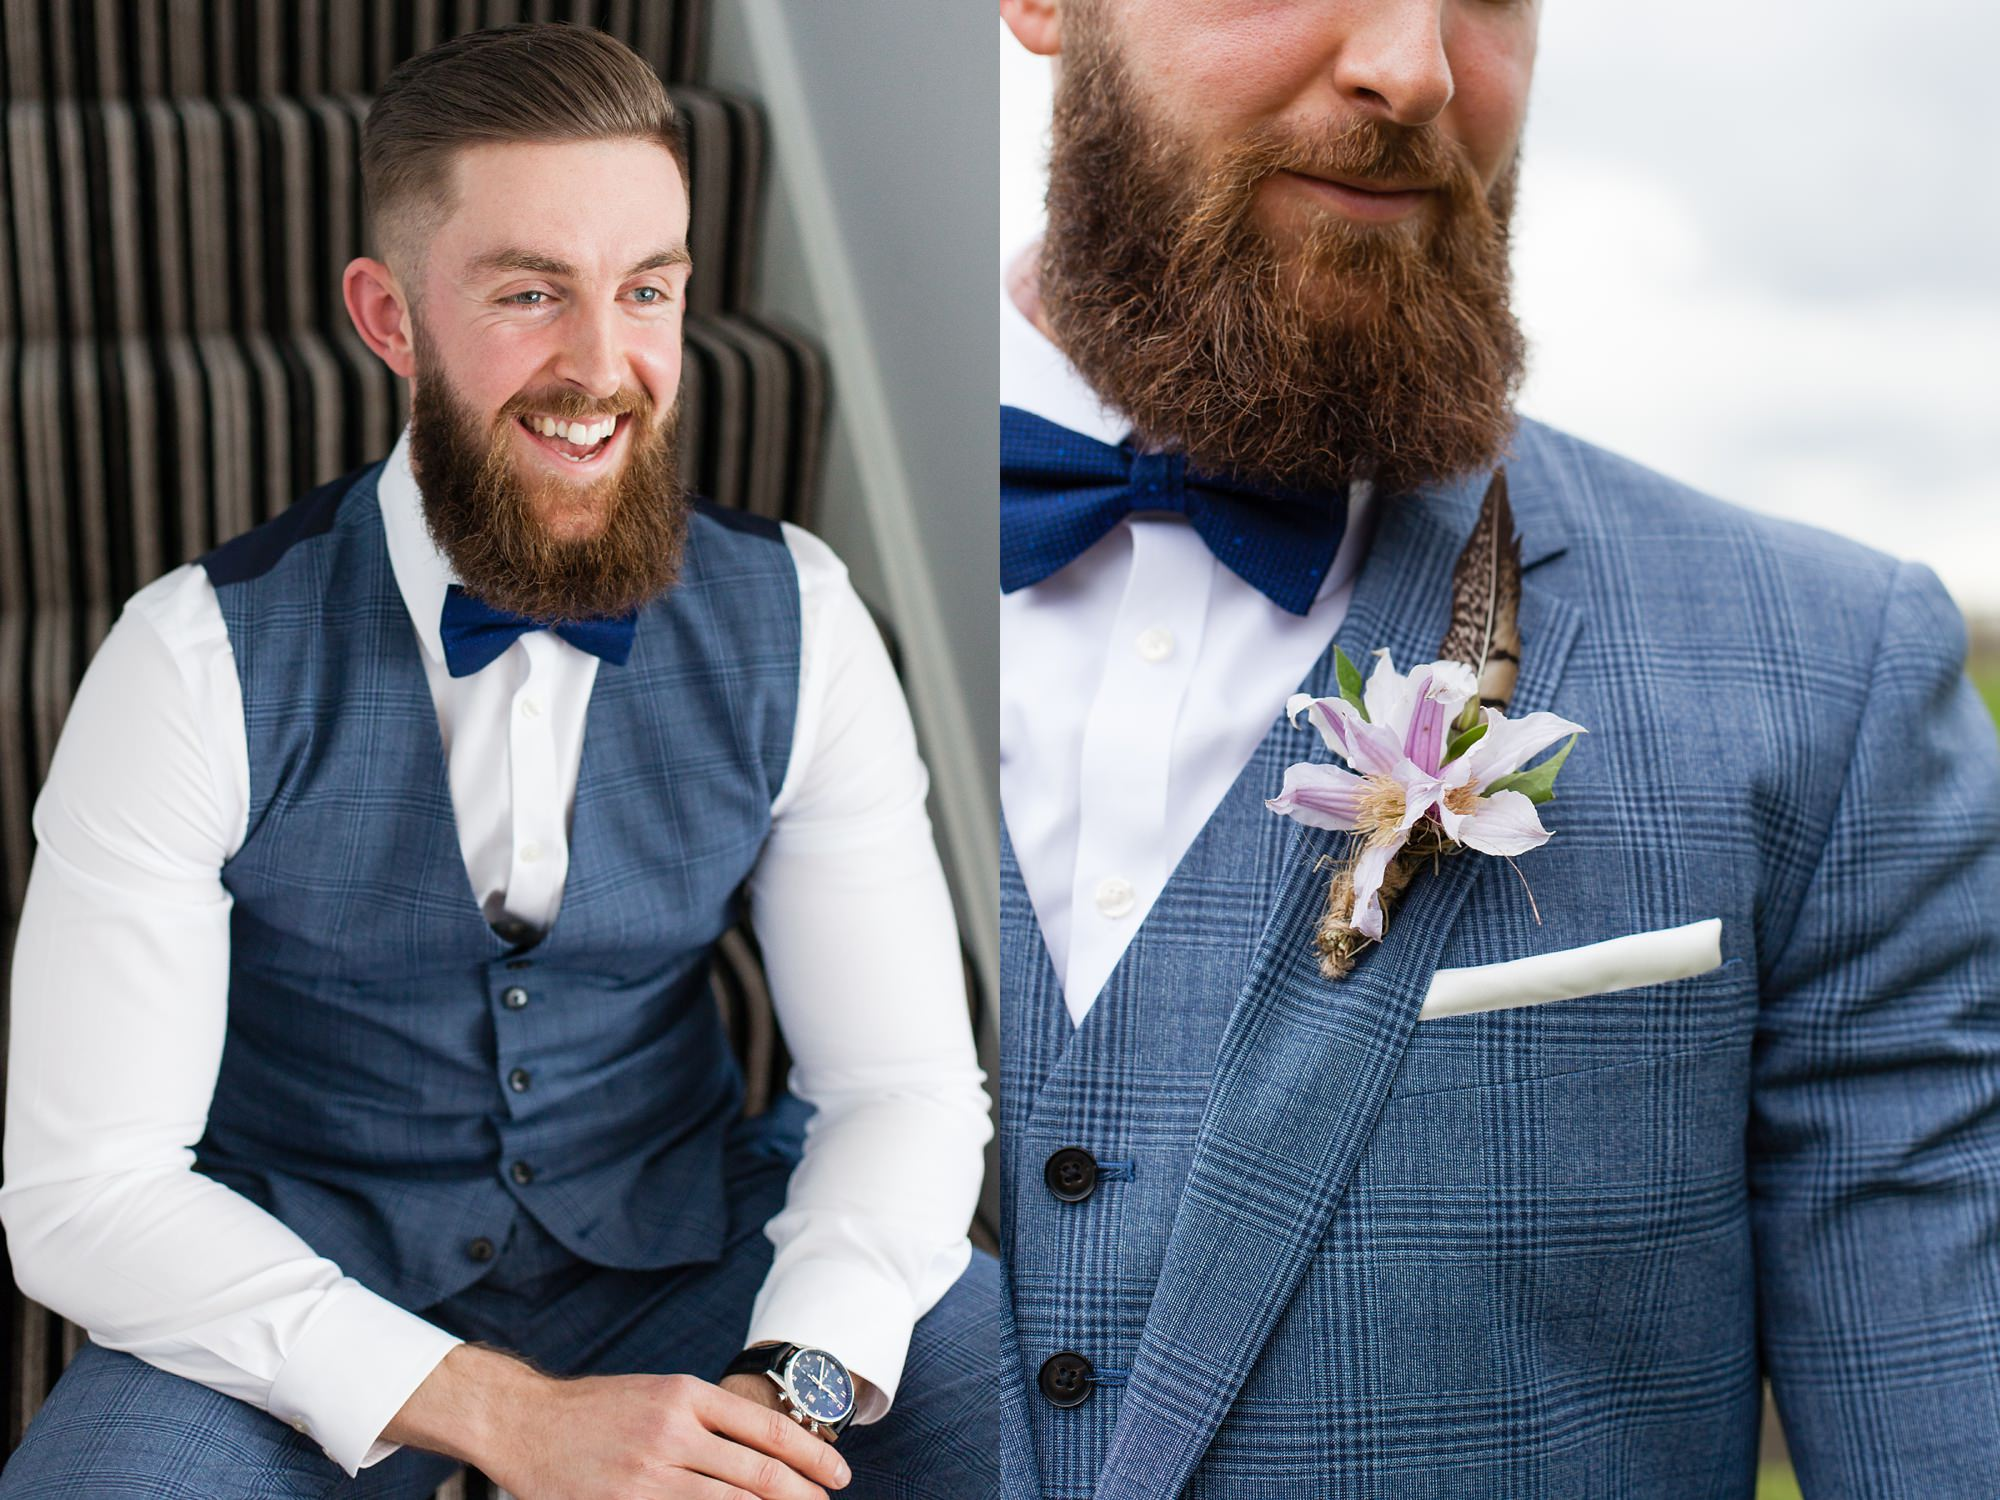 Portrait of hipster groom with beard, undercut hair style, prince of whales blue suit.